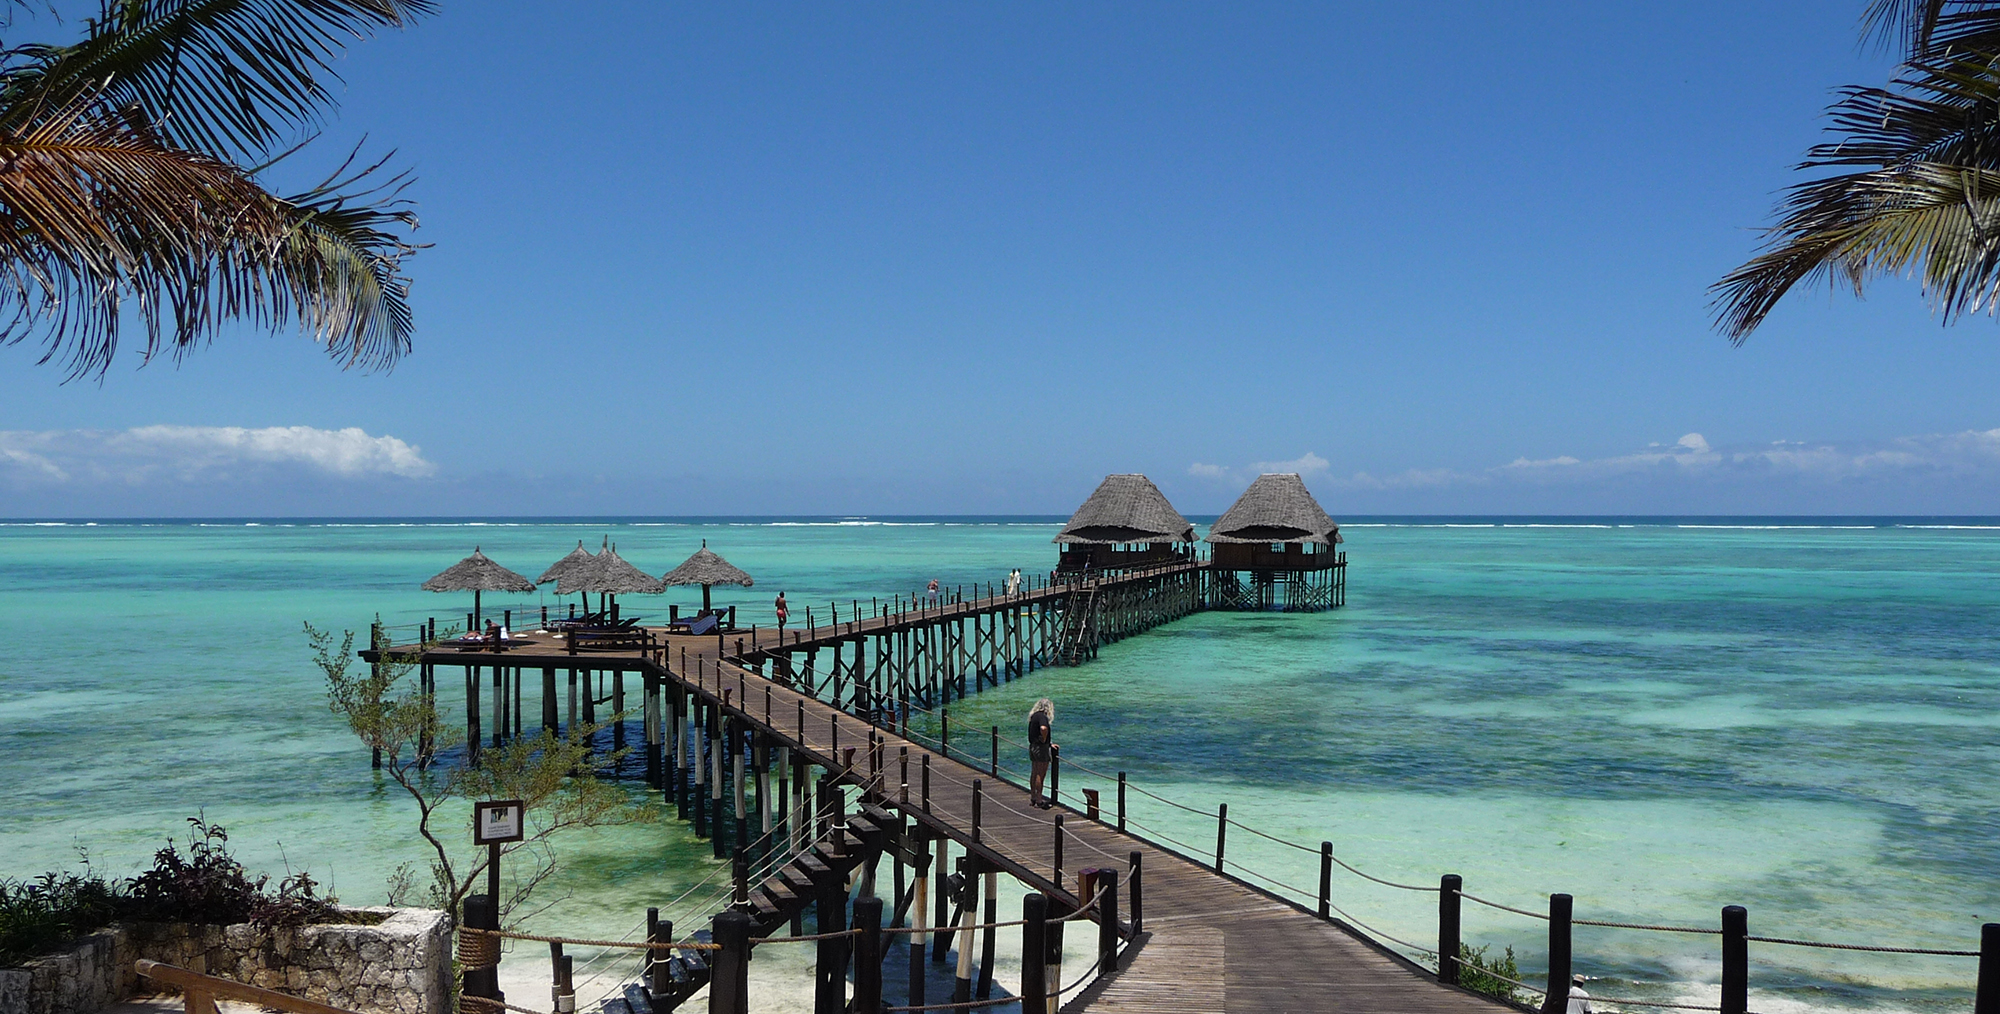 Resort jetty in Zanzibar ©Dave Abbott